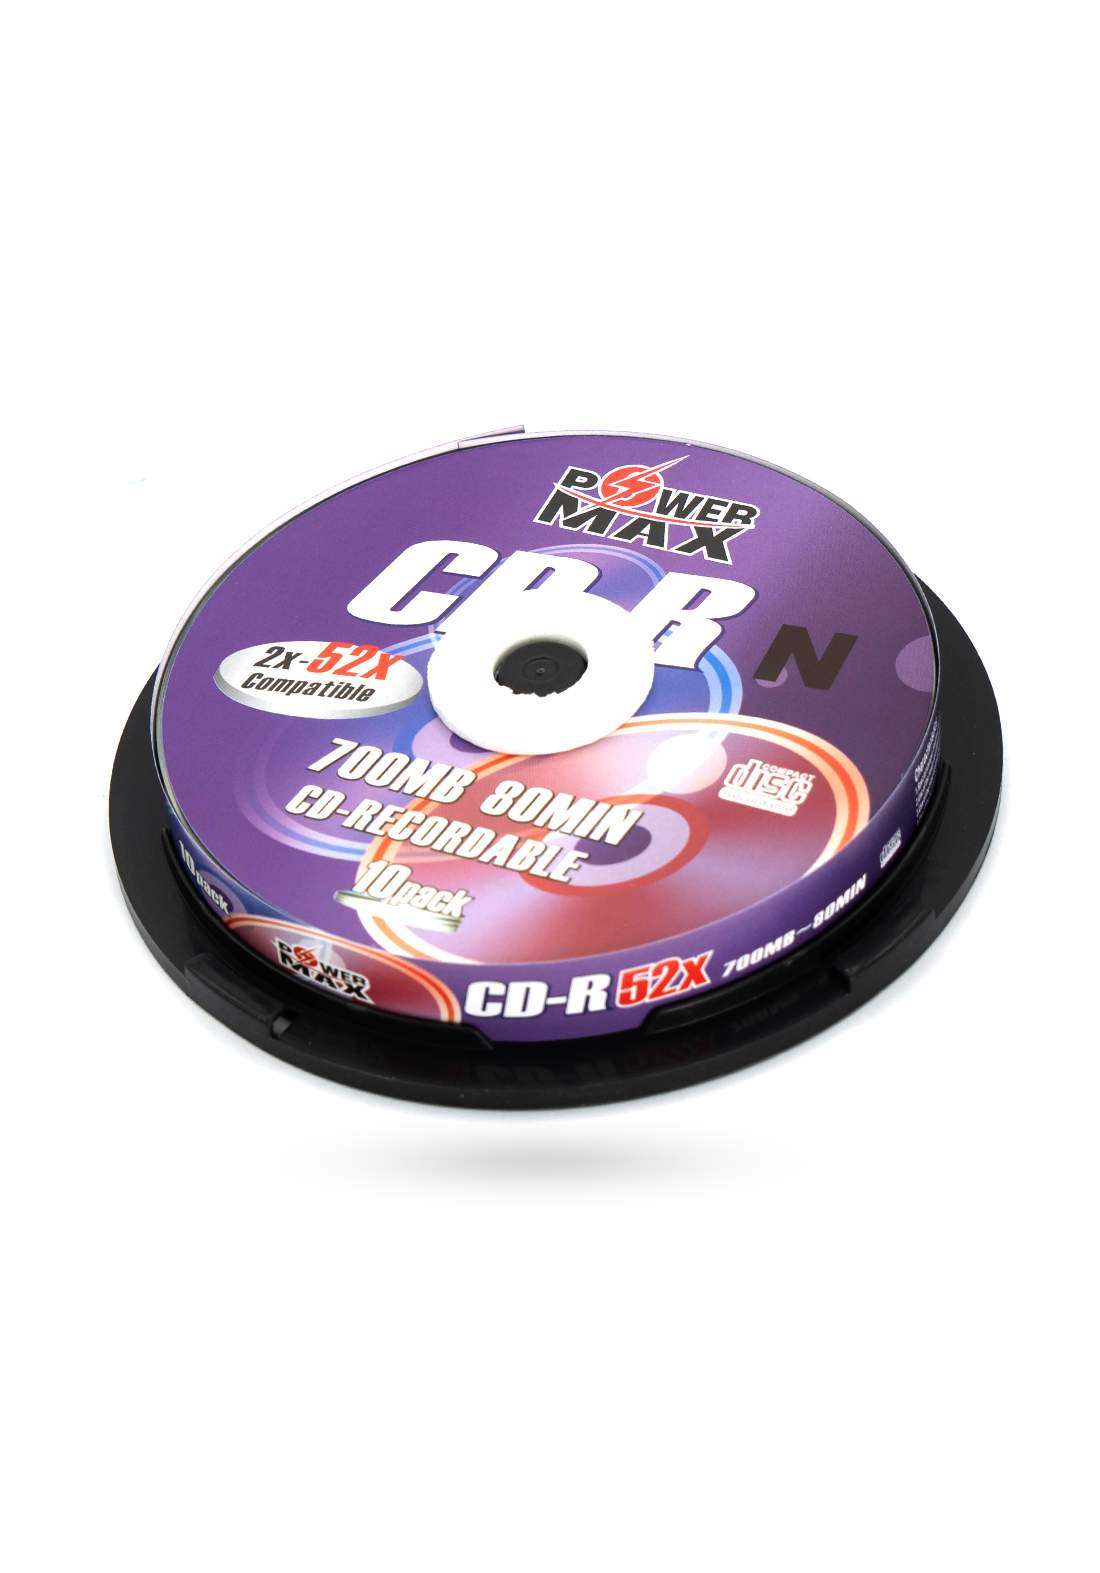 Power Max CD-R 700MB 80 Minute 52x Recordable Disc  - 10 Pack اقراص سي دي ليزرية